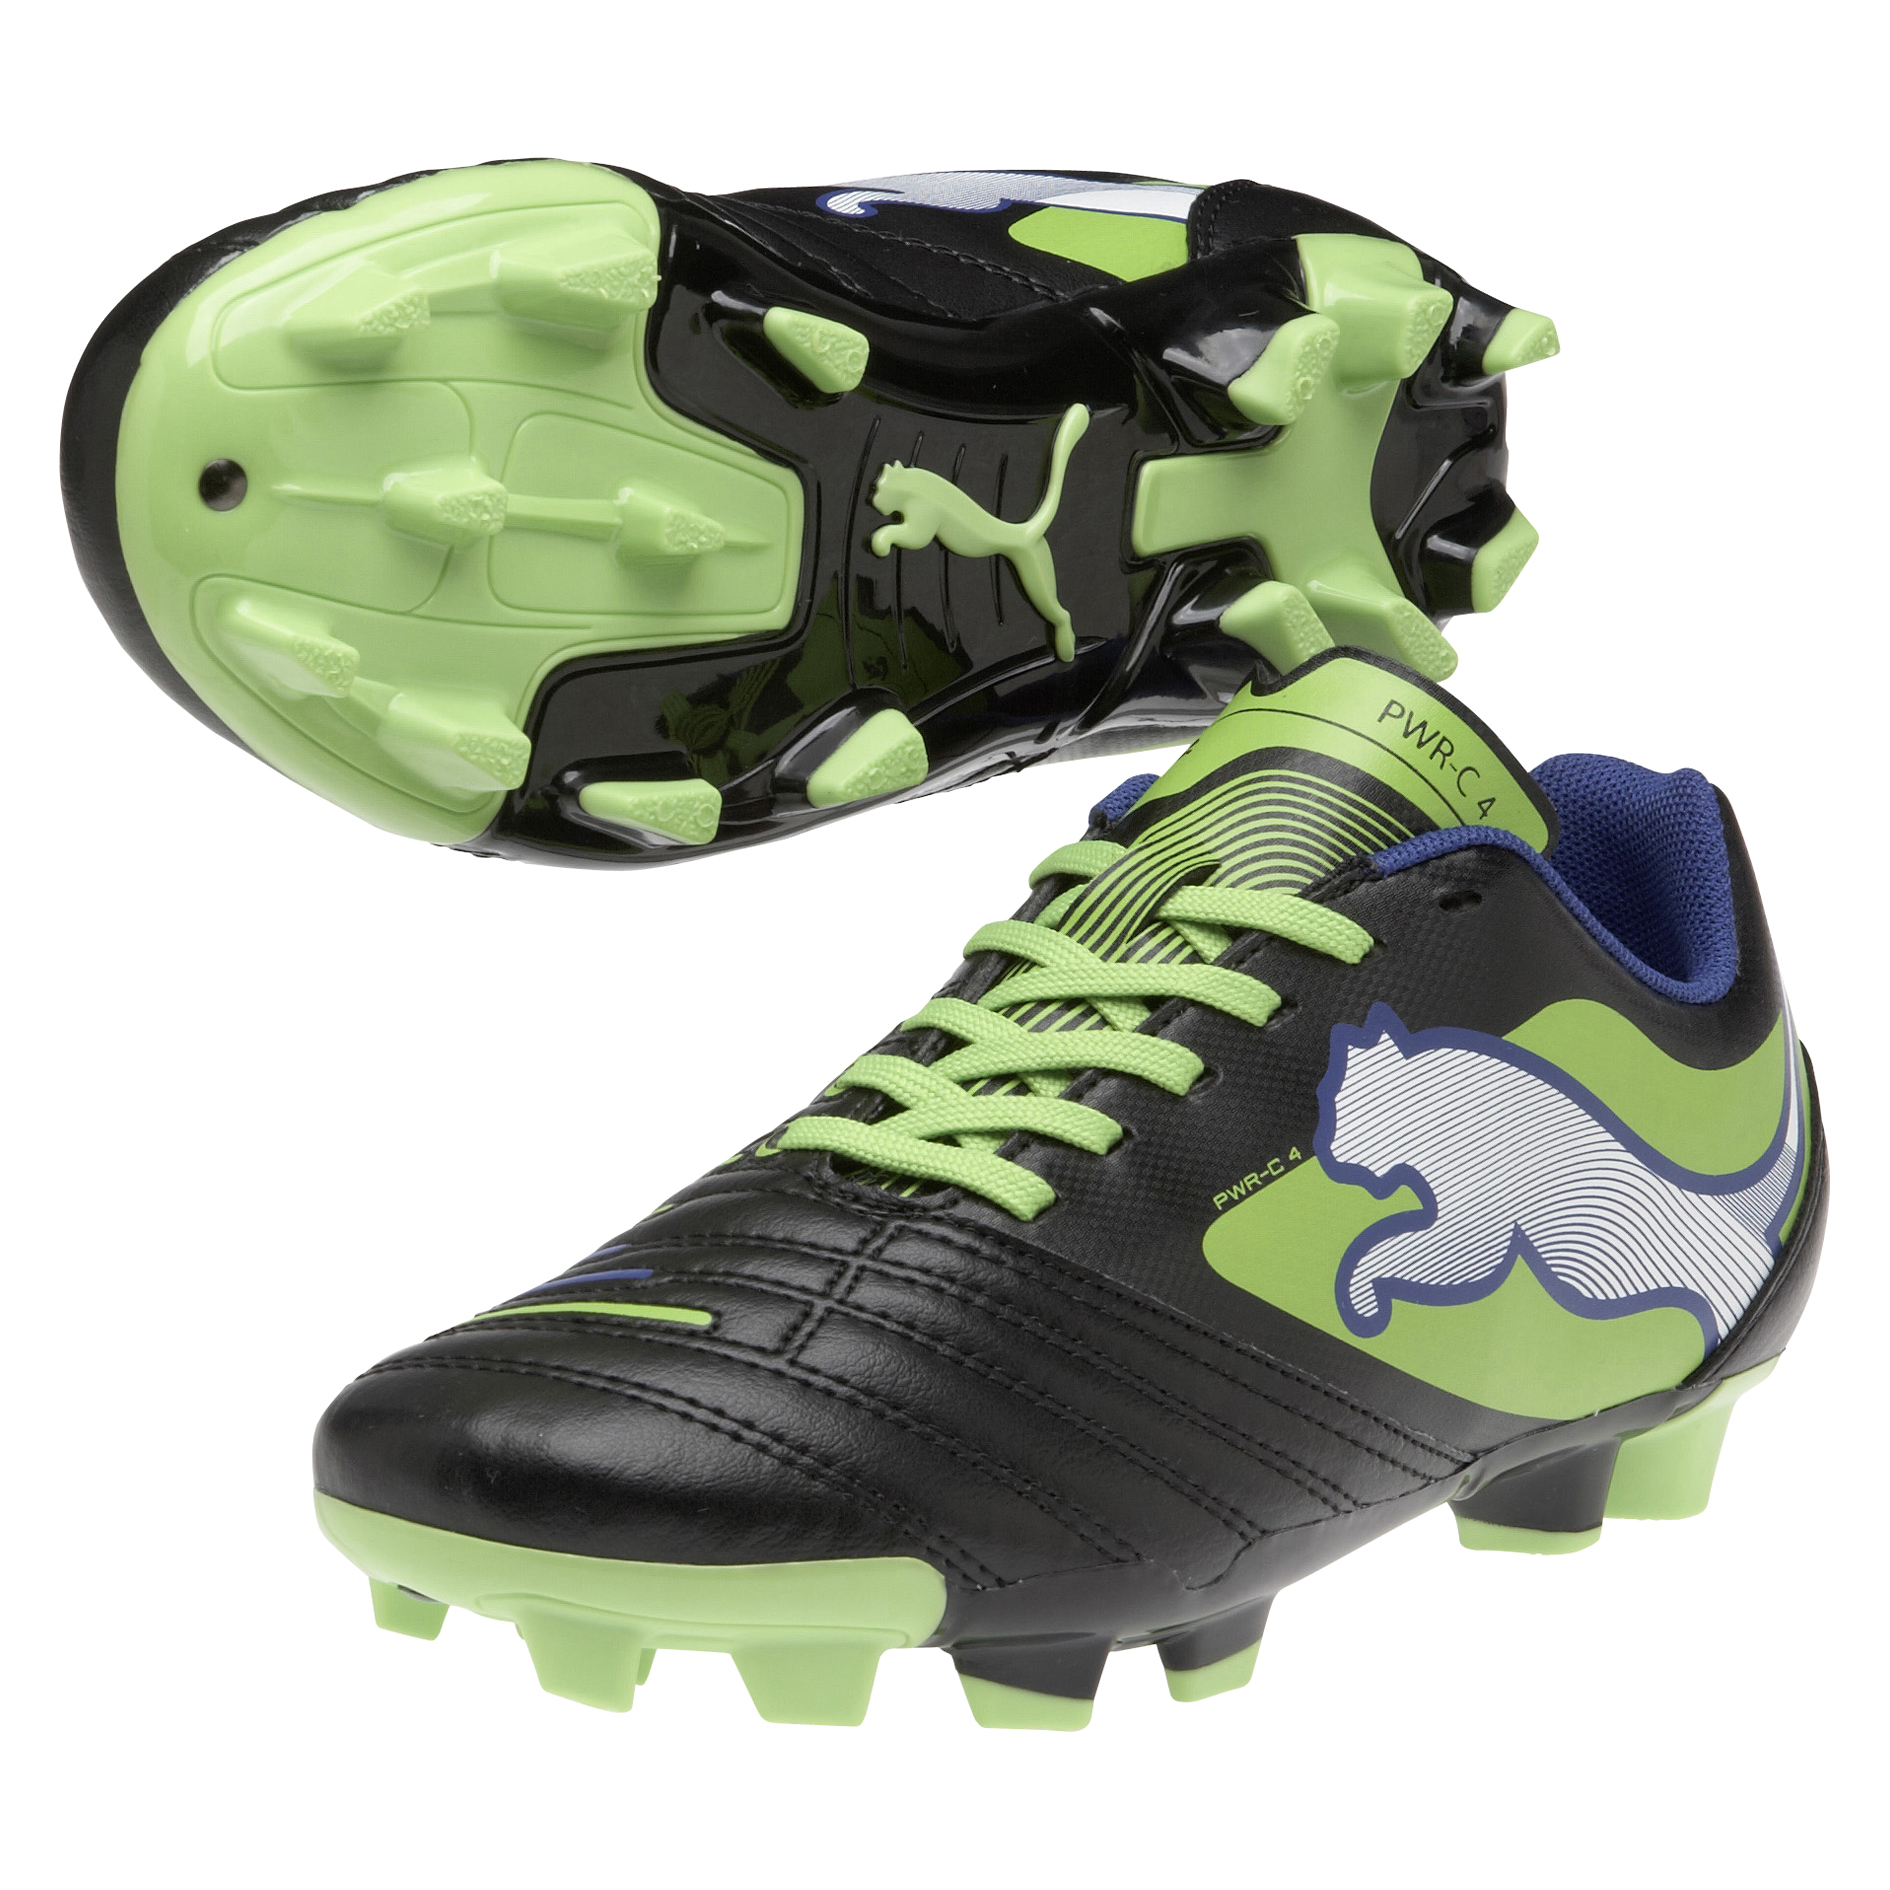 Puma Powercat 4 Firm Ground Football Boots - Black/Jasmin Green/Monaco Blue - Kids